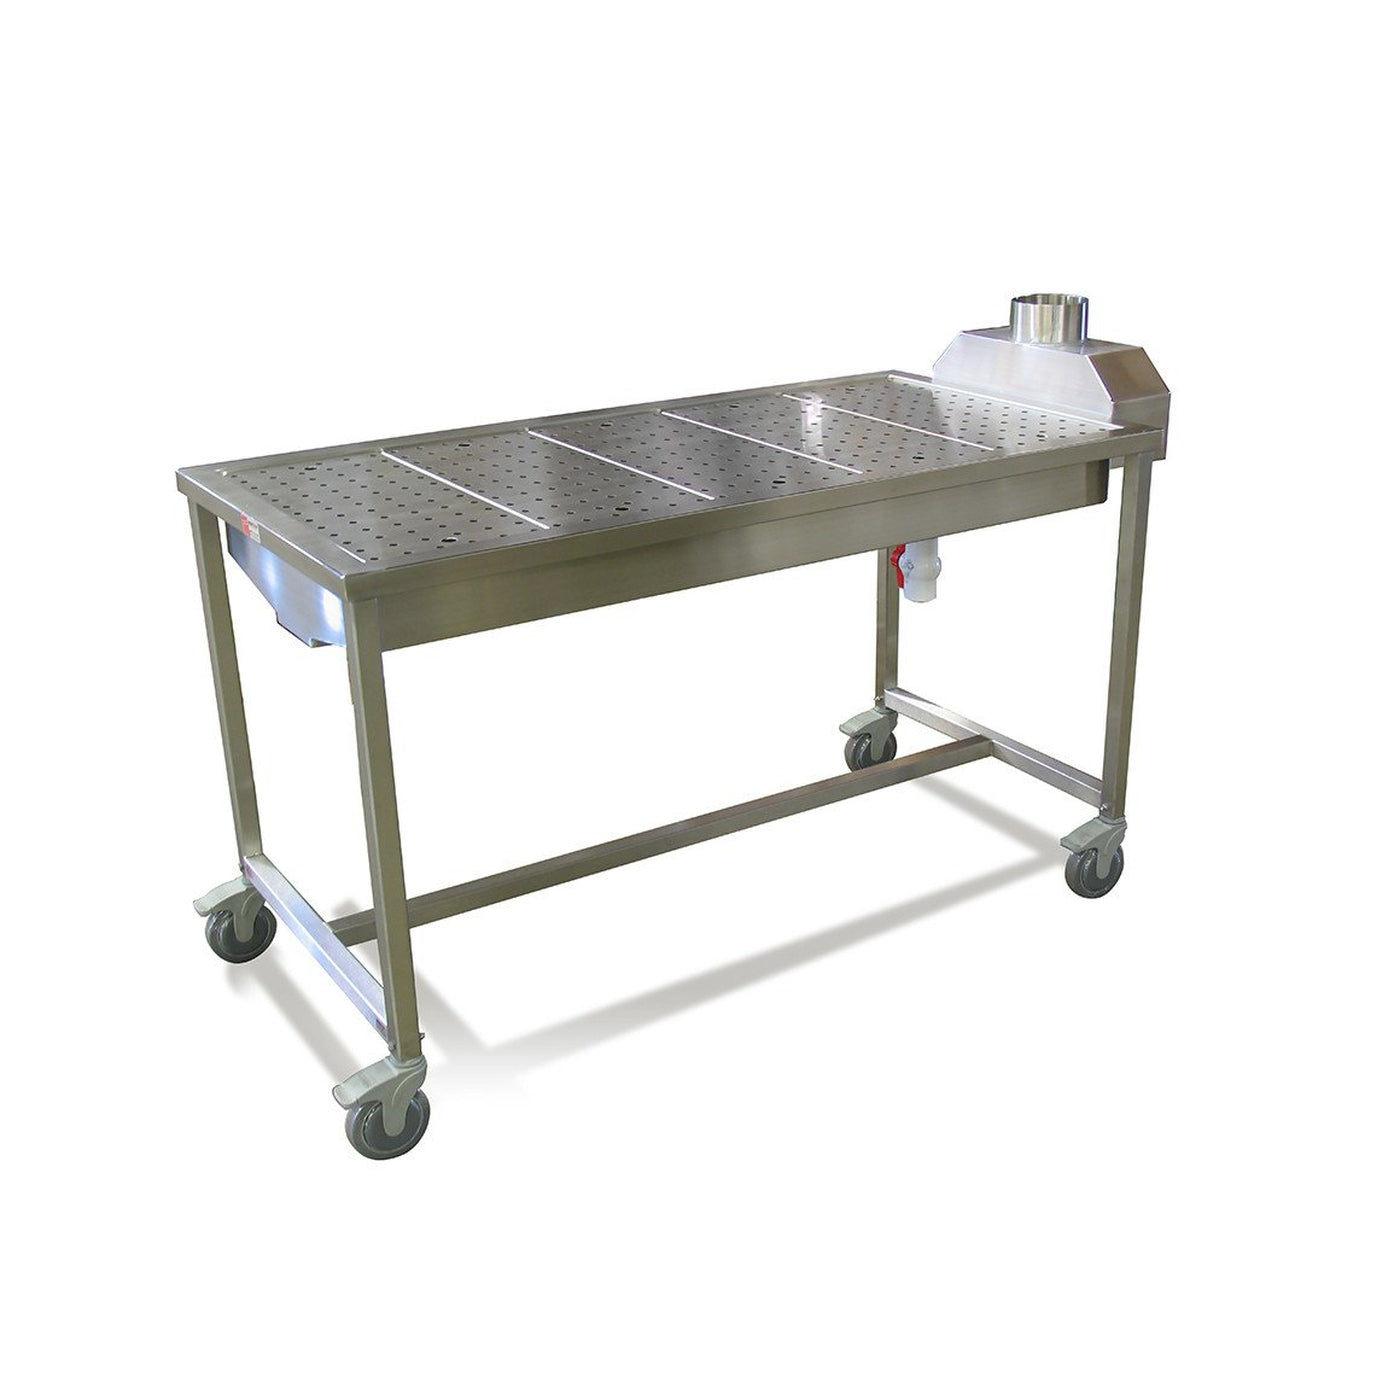 Mobile Downdraft Necropsy Table-Necropsy Dissection Tables-Mortech Manufacturing Company Inc. Quality Stainless Steel Autopsy, Morgue, Funeral Home, Necropsy, Veterinary / Anatomy, Dissection Equipment and Accessories